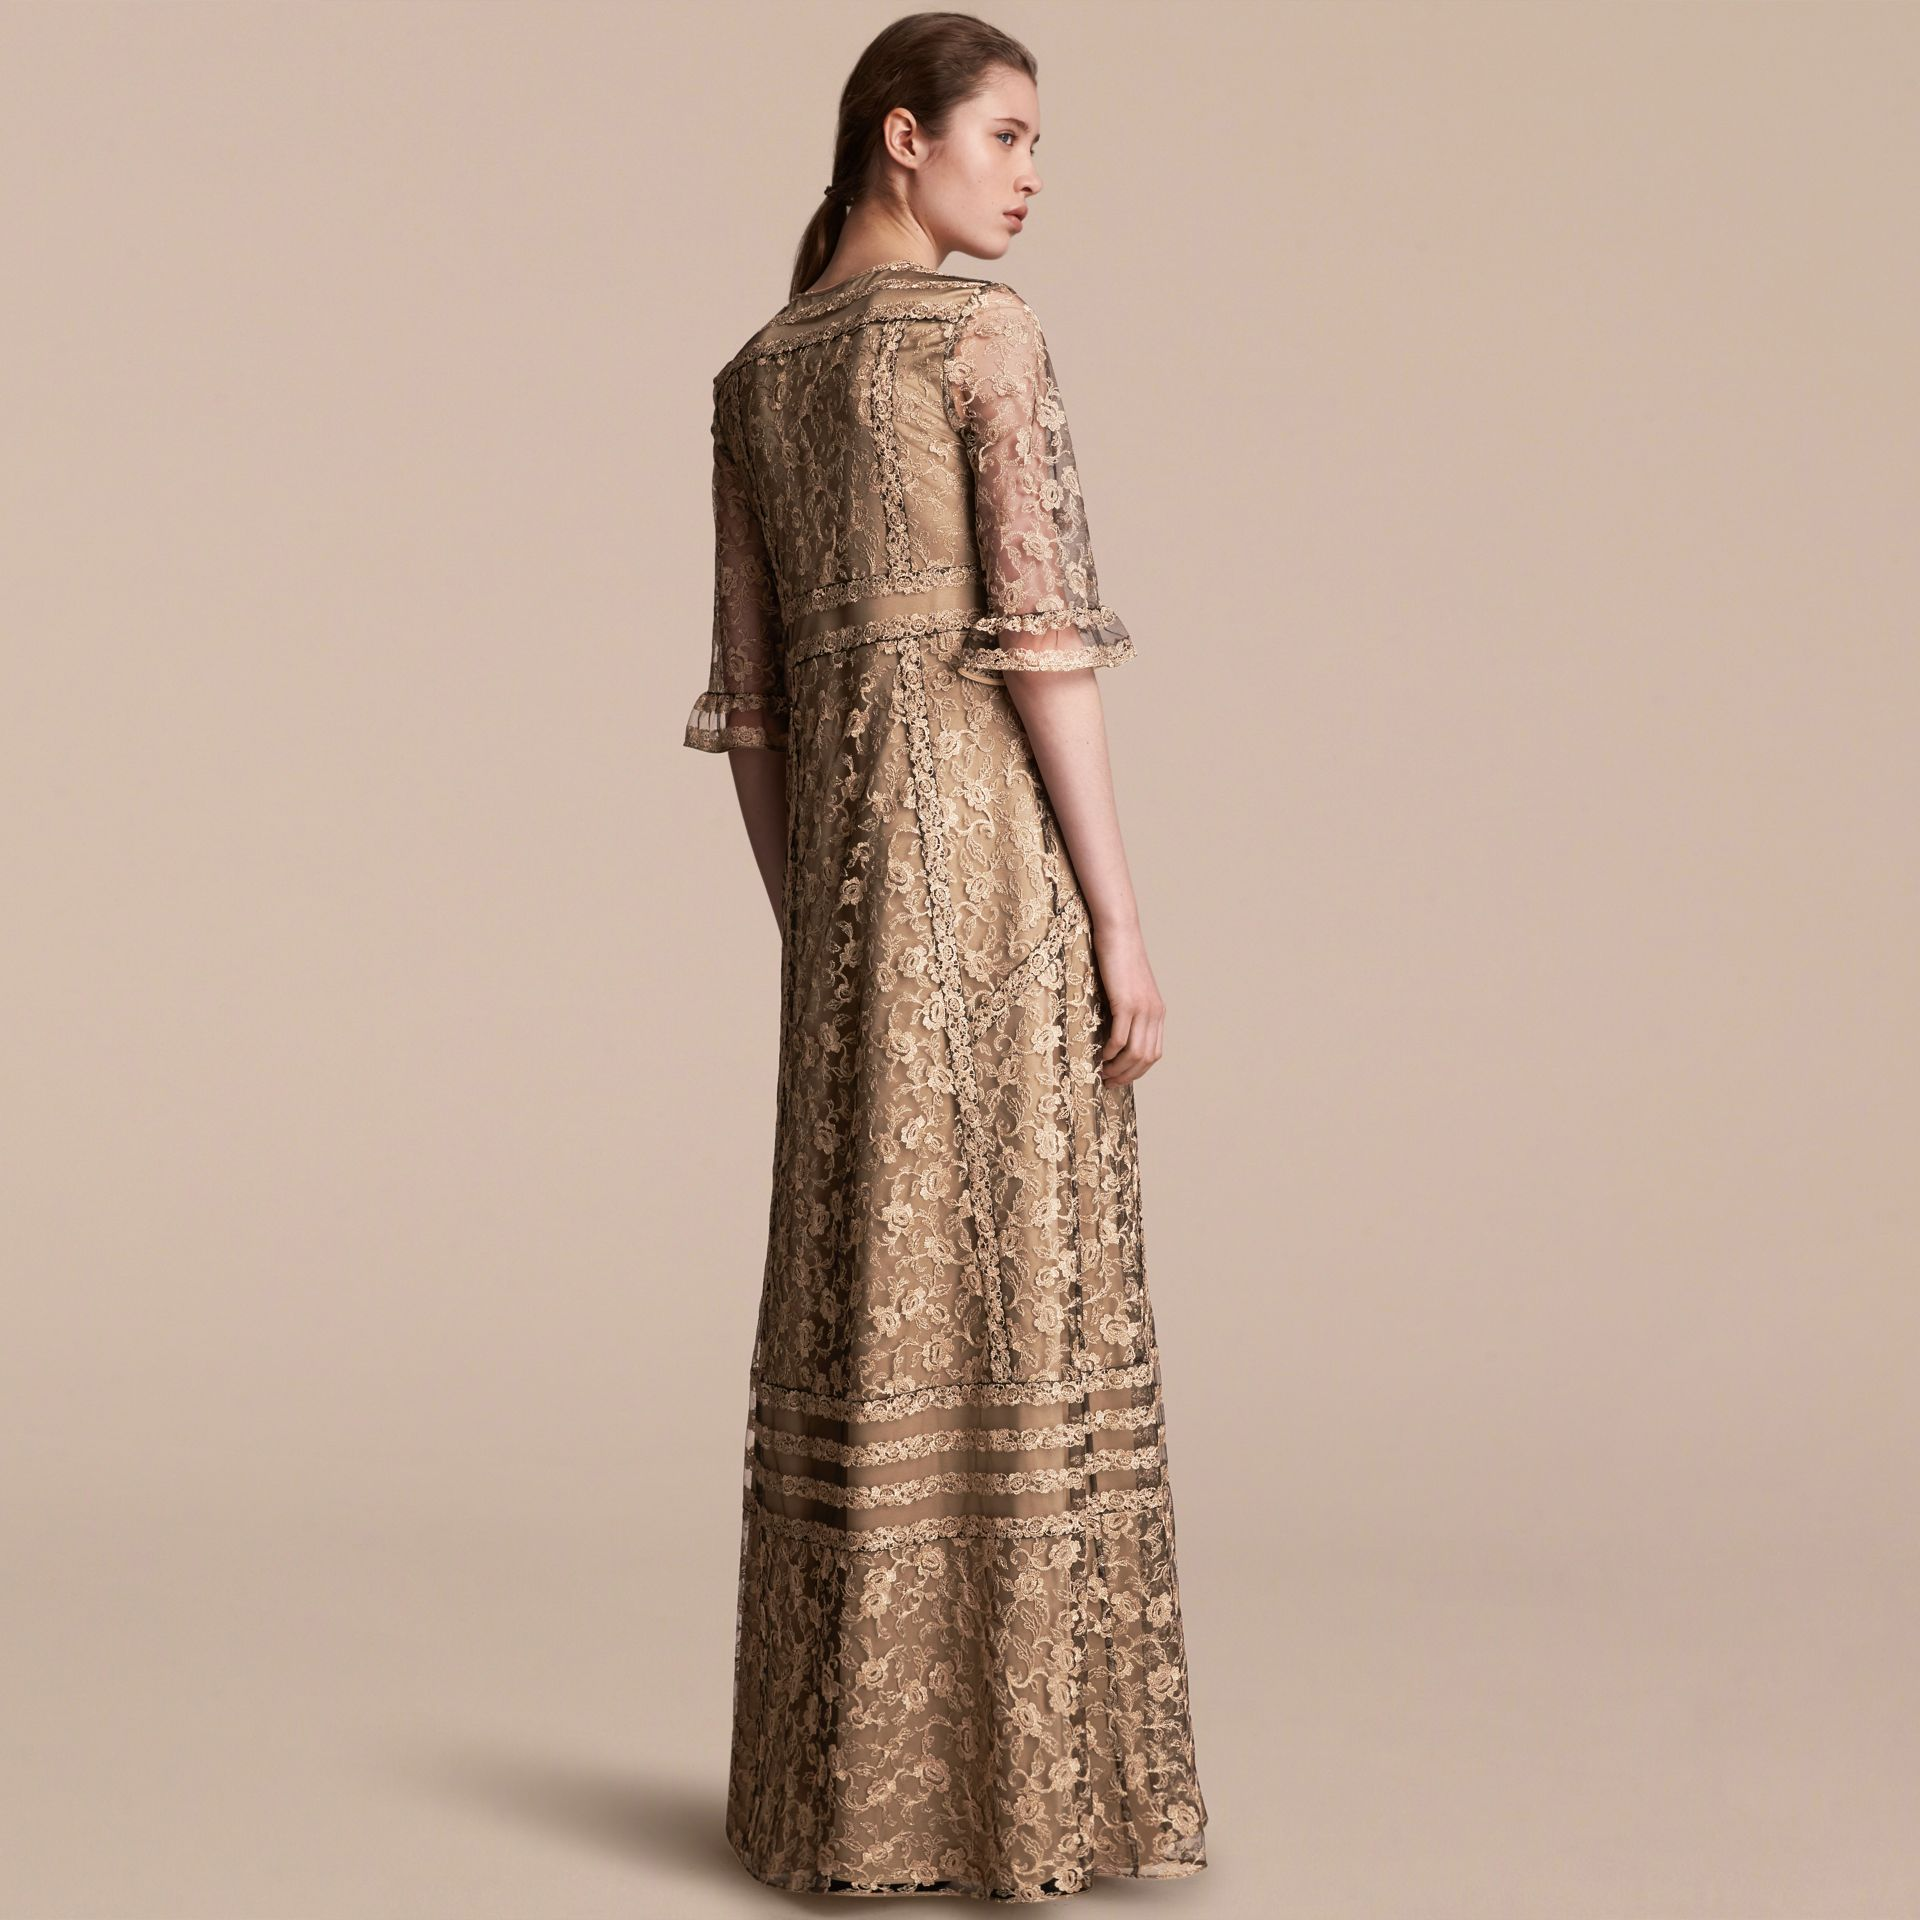 Floral Lace Tulle Dress in Gold - Women | Burberry Hong Kong - gallery image 3